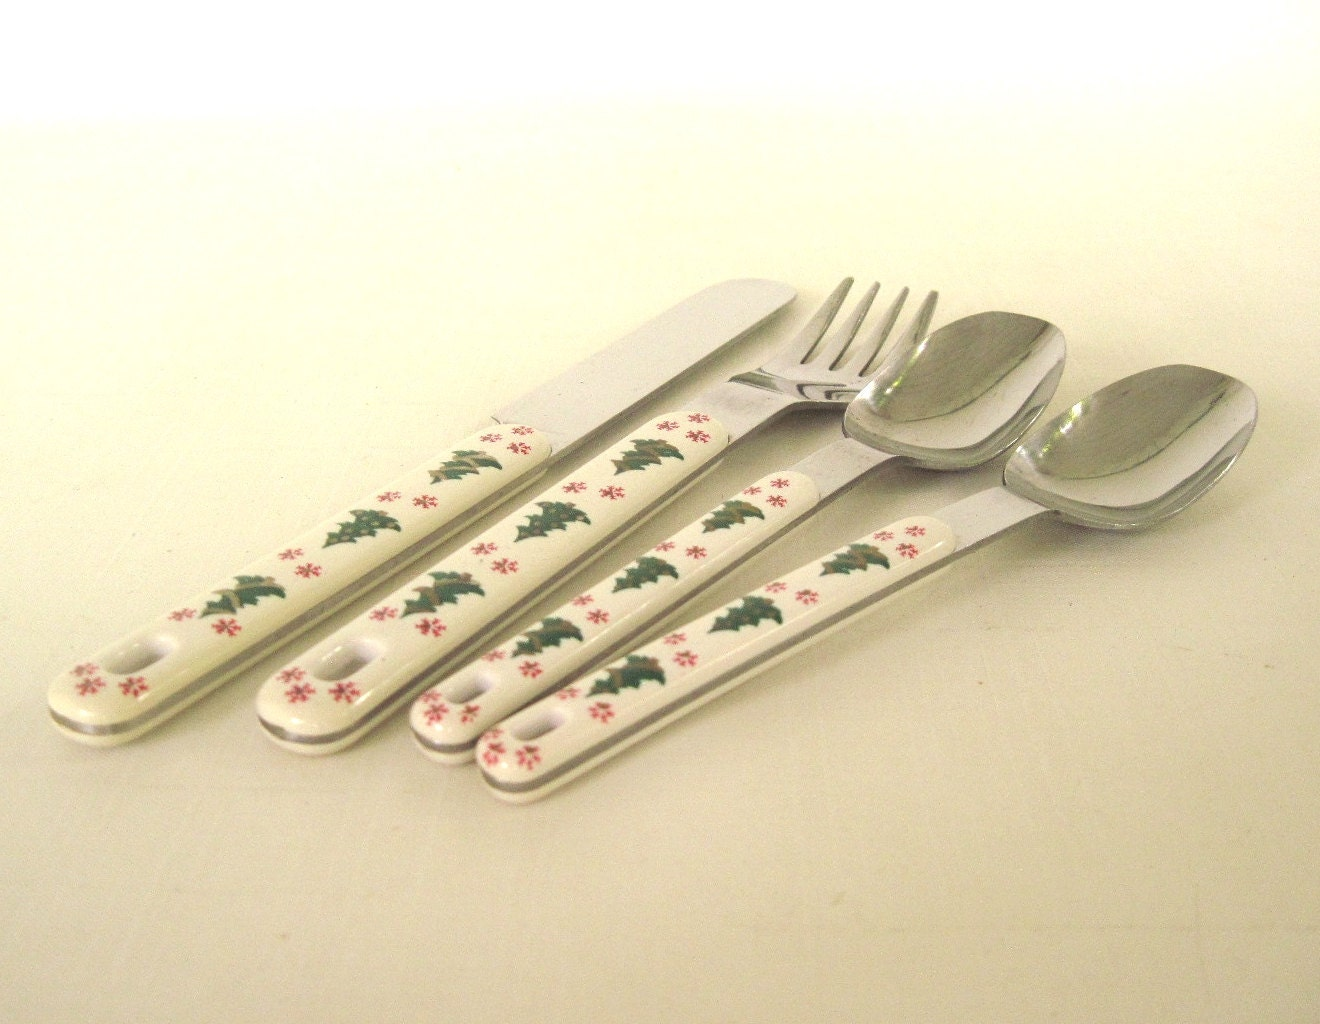 Northland Christmas Tree Stainless Flatware Replacement